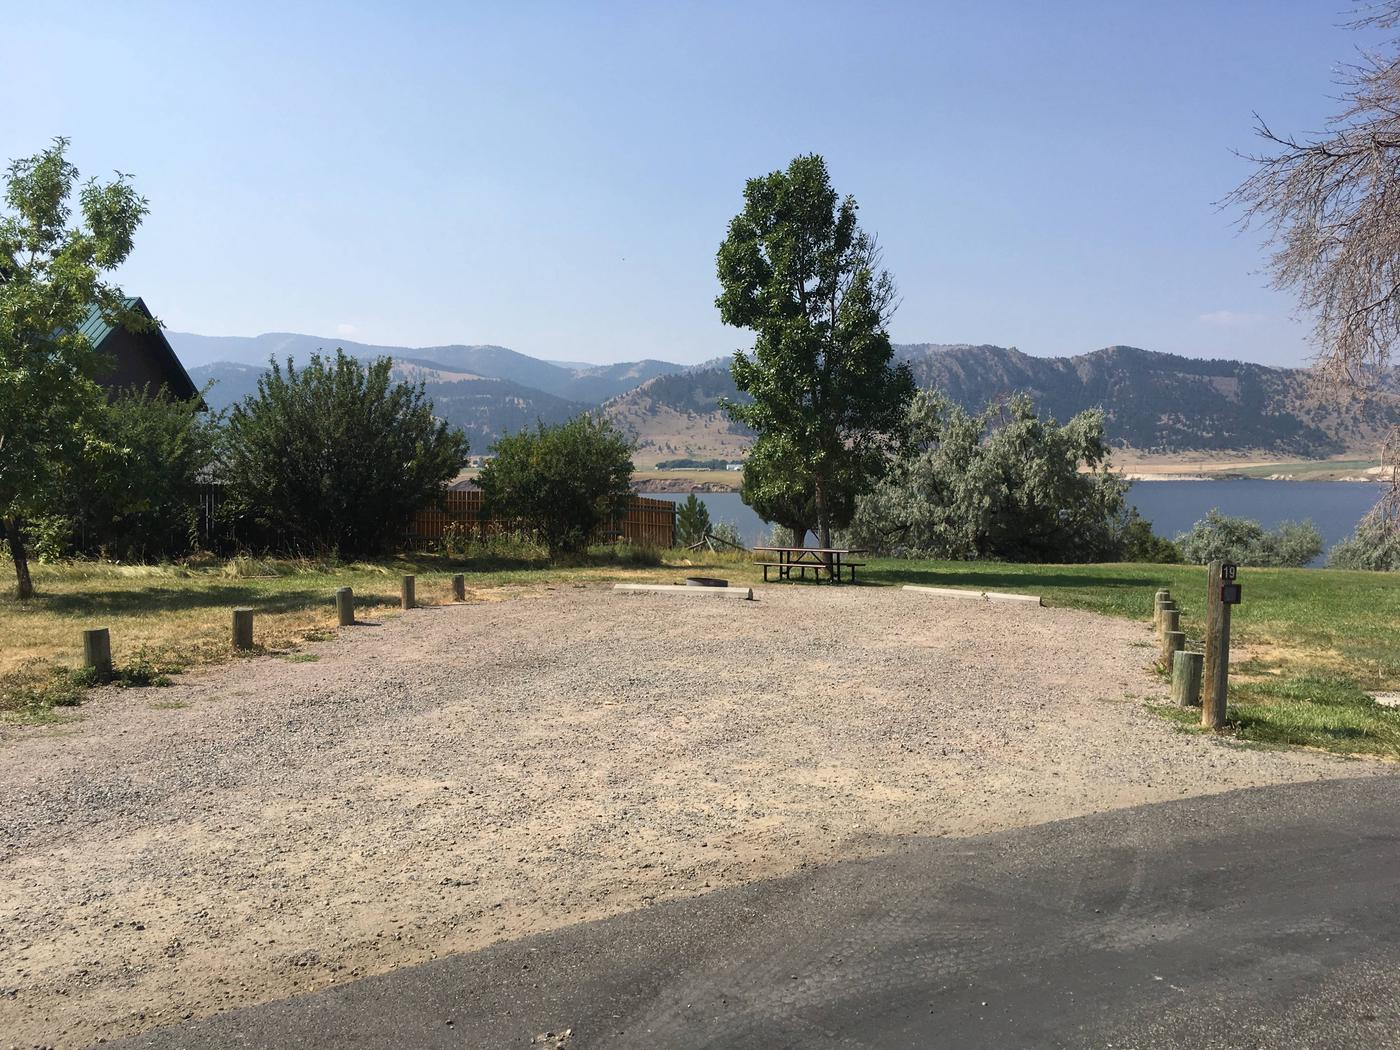 Site 19 BLM Holter Lake Campground. Lakeside campsite. Paved access to campsite. Graveled campsite with picnic table and fire pit. Trees dispersed throughout campground. Adjacent to private land.Site 19 BLM Holter Lake Campground.